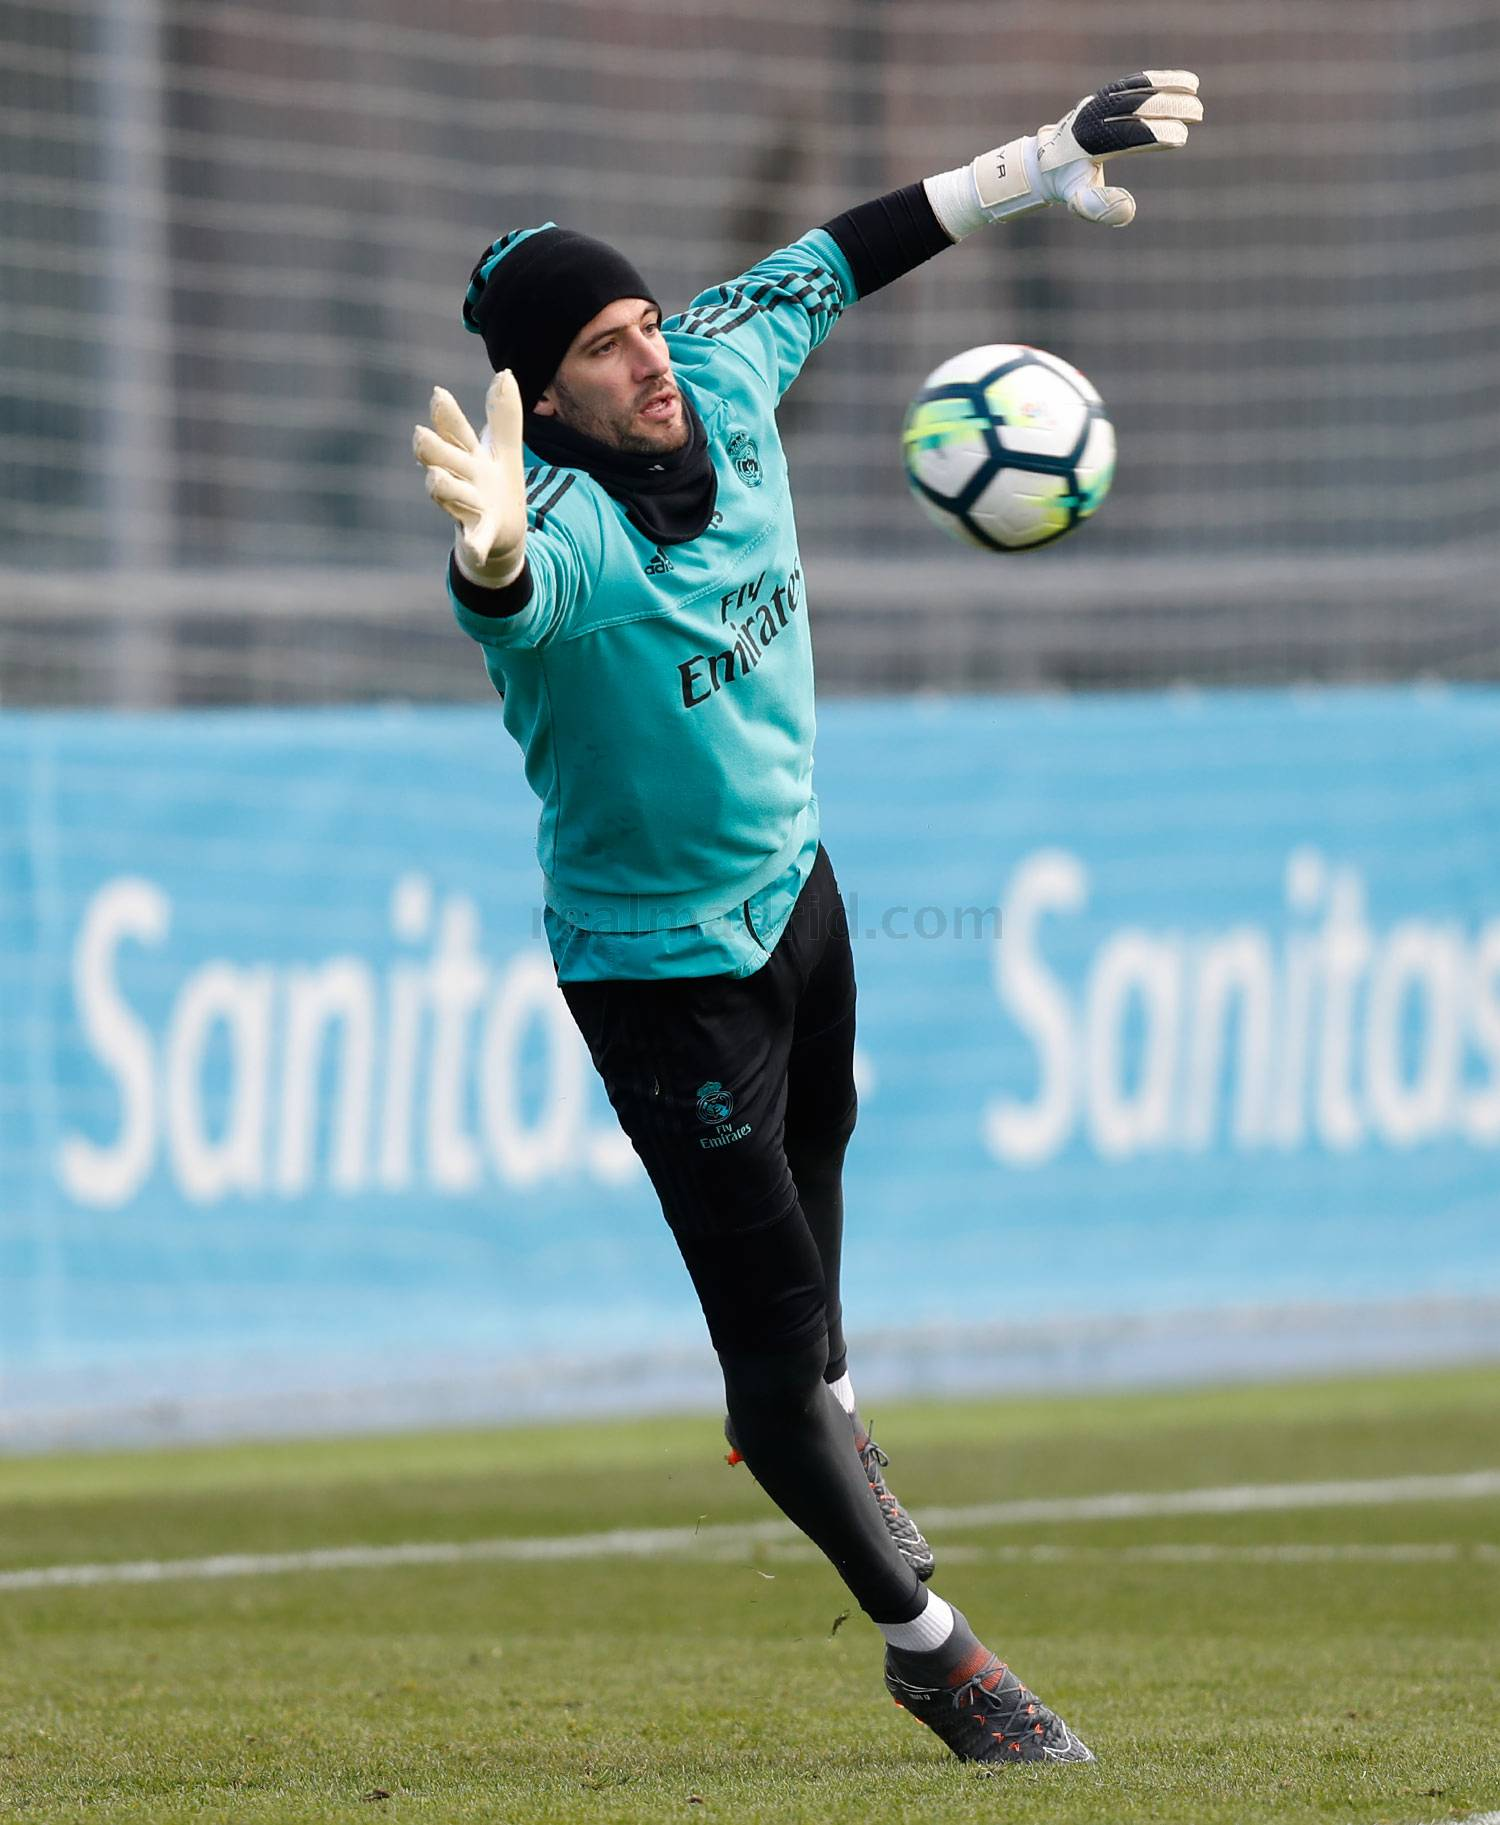 Real Madrid - Entrenamiento del Real Madrid - 09-02-2018